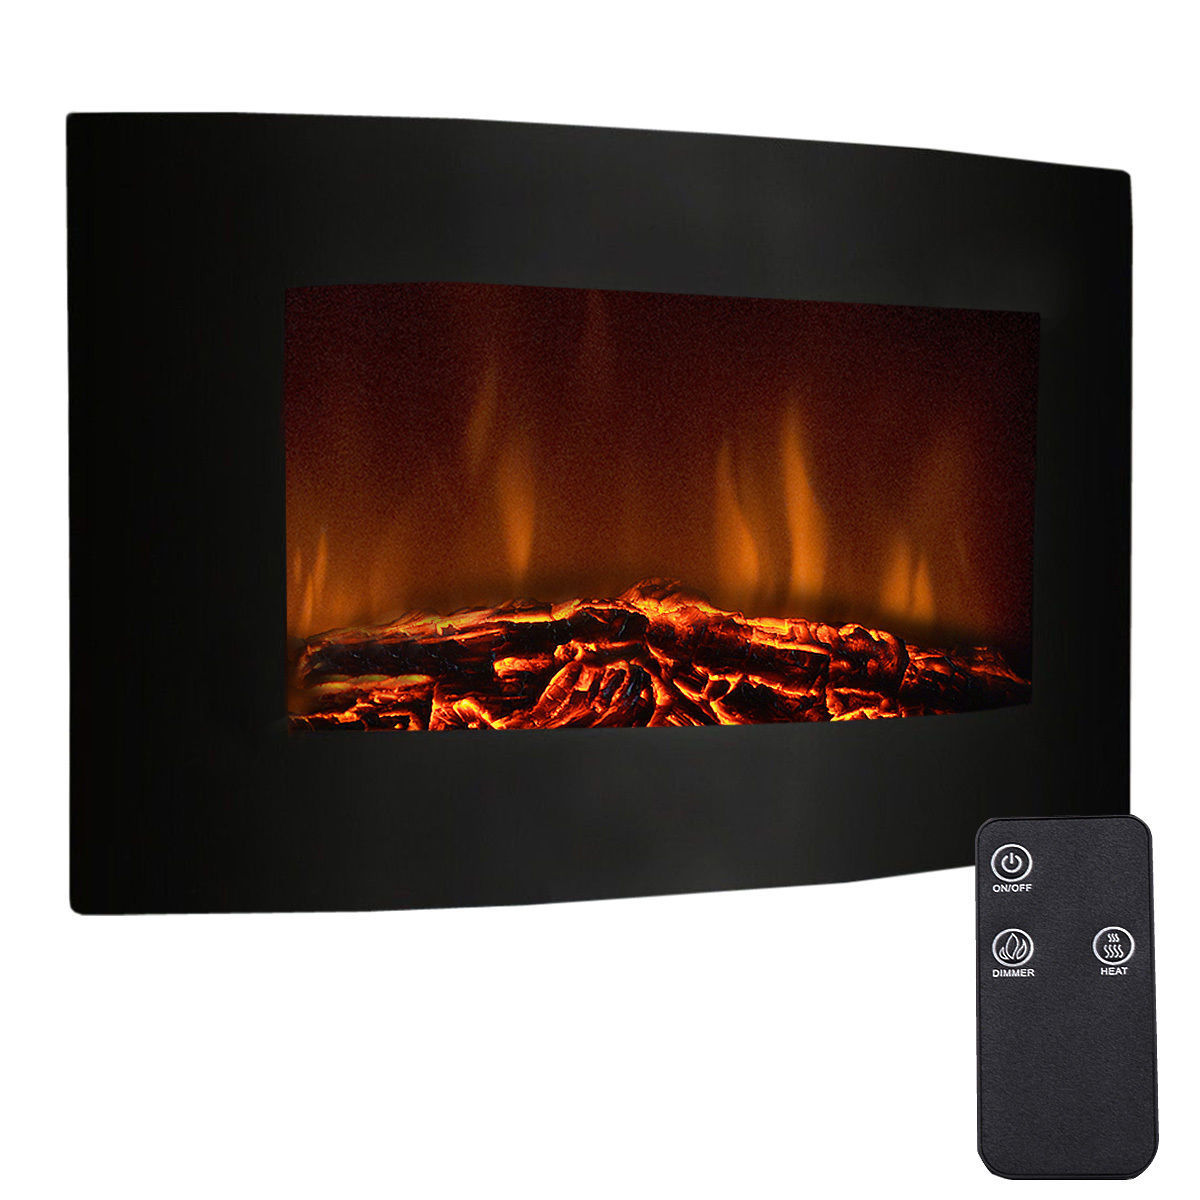 Wall Mount Fireplaces Best Choice Products 50in Indoor Electric Wall Mounted Fireplace Heater W Adjustable Heating Metal Glass Frame Controller Black